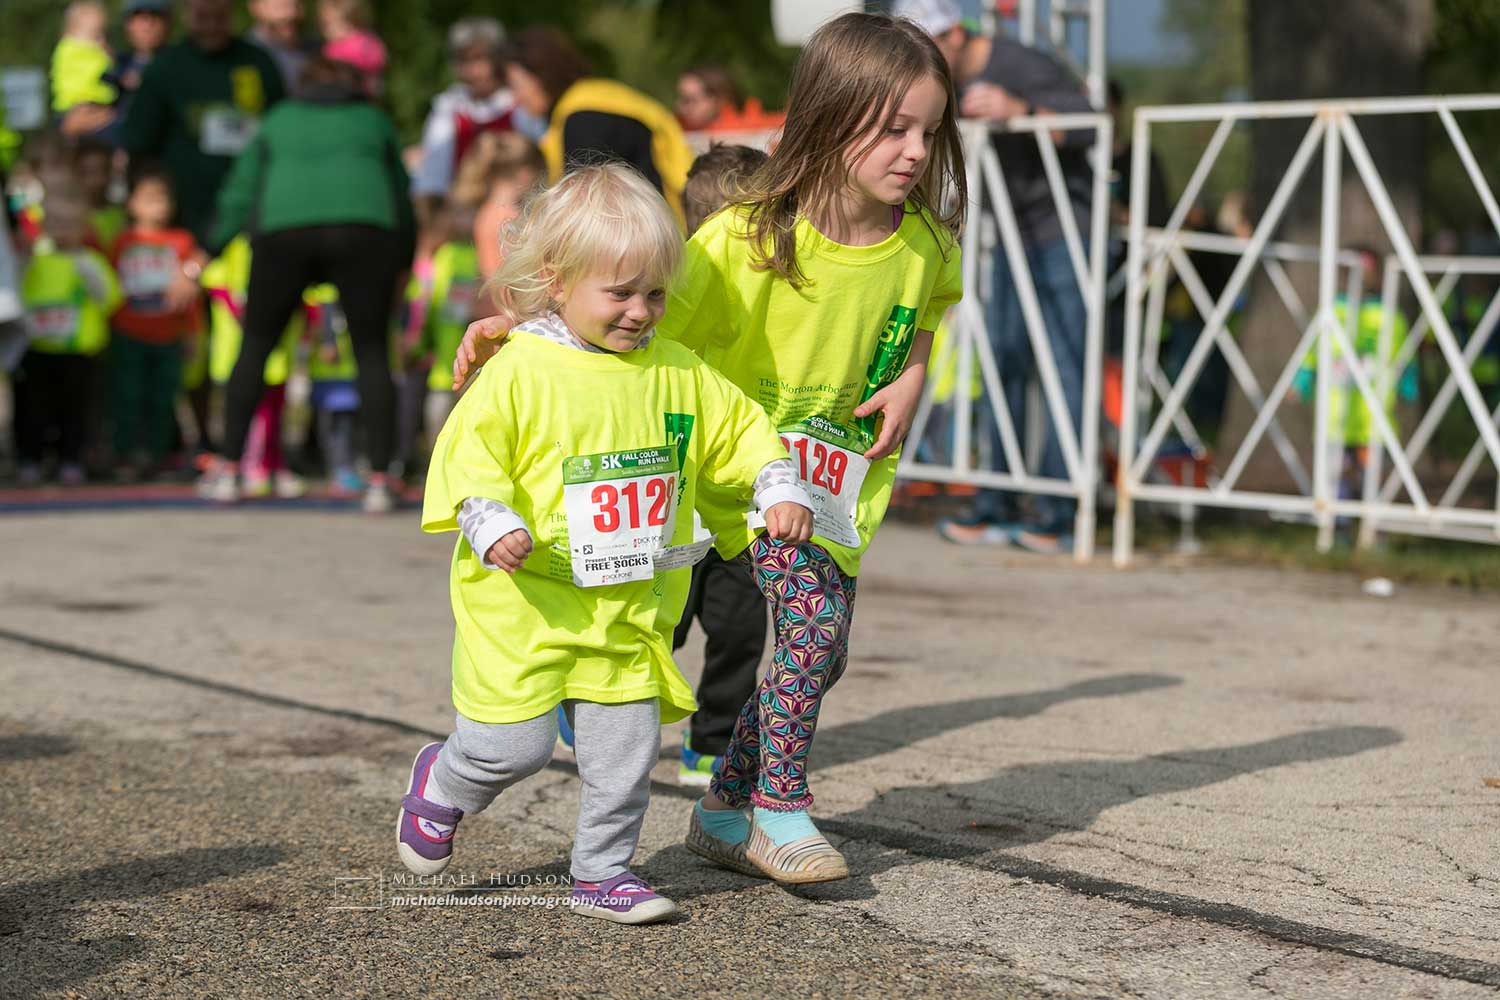 My favorite picture of the day, when one little girl was left behind by all the other kids. Then her sister came up behind her, put her arm around her and ran the rest of the race as her guide.